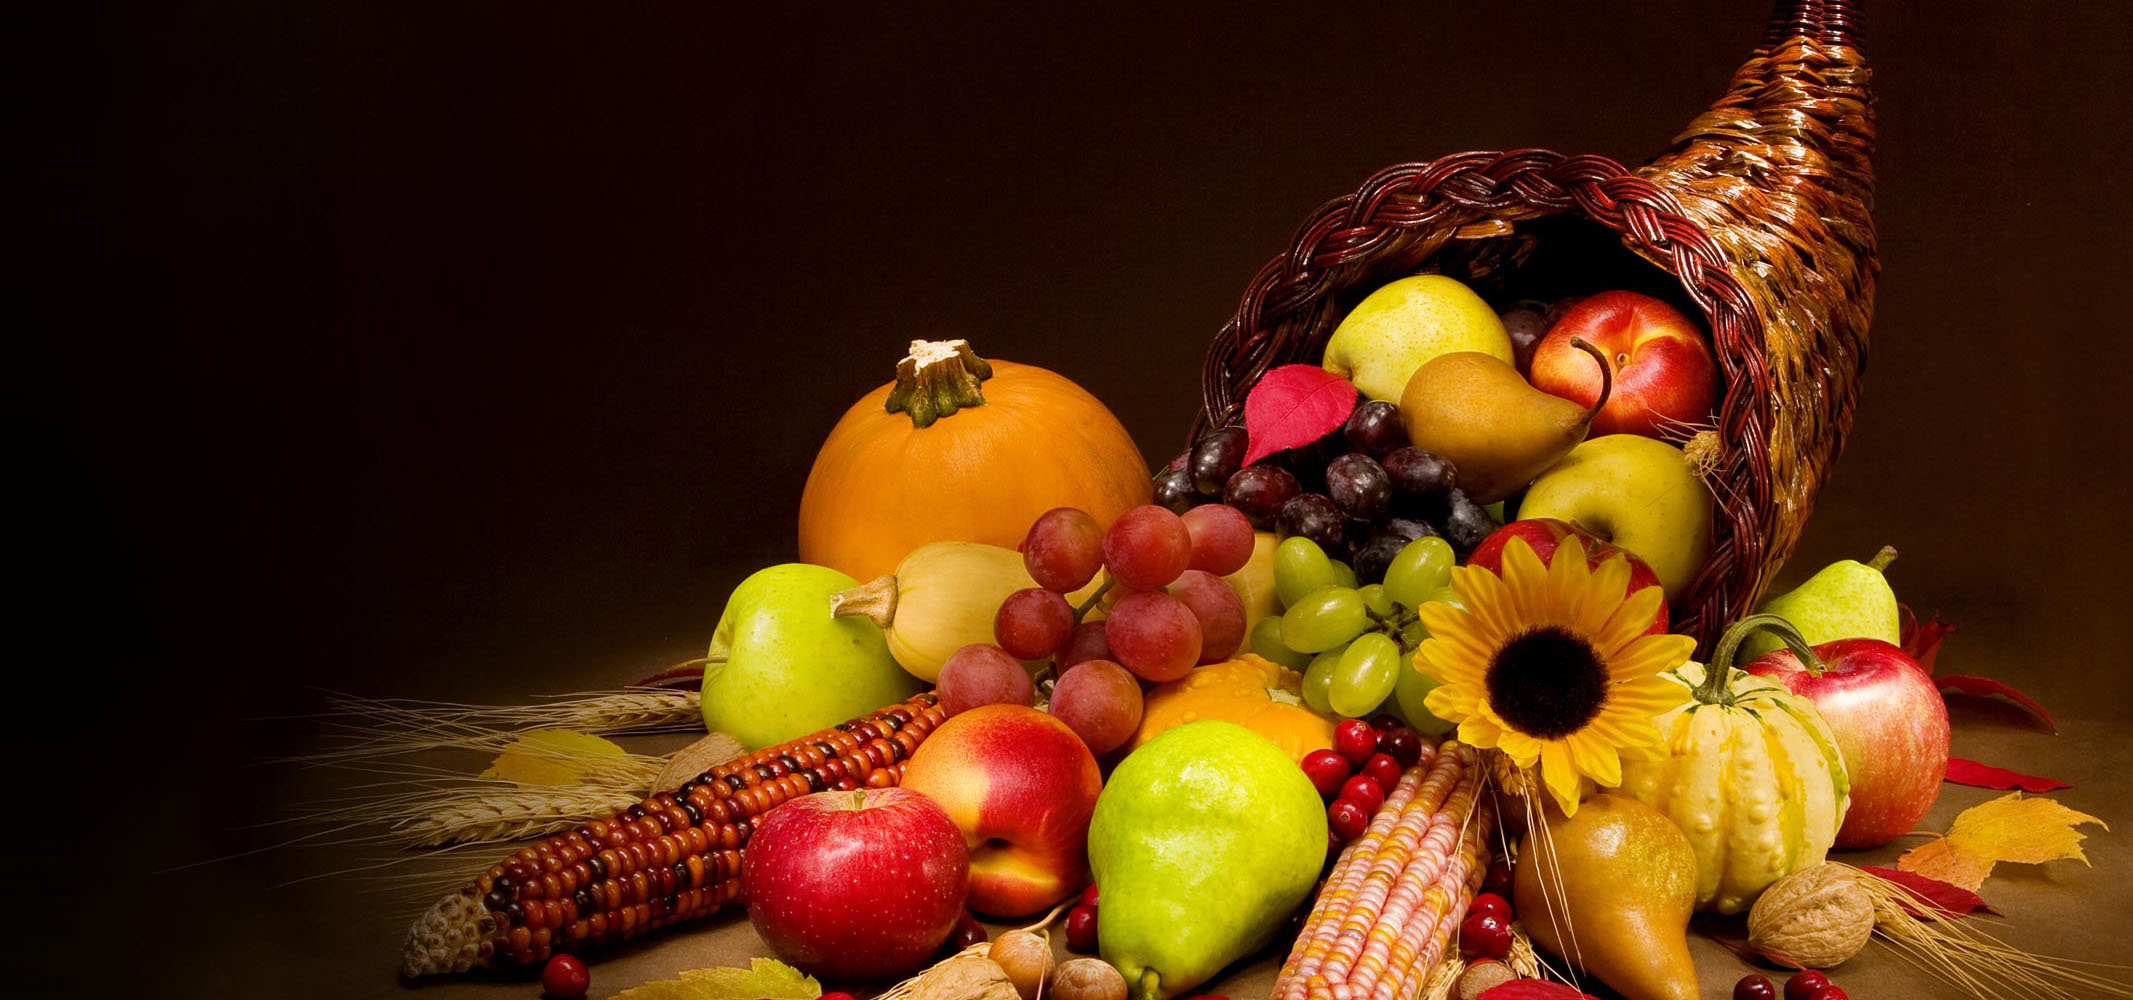 Happy Thanksgiving image with fall items